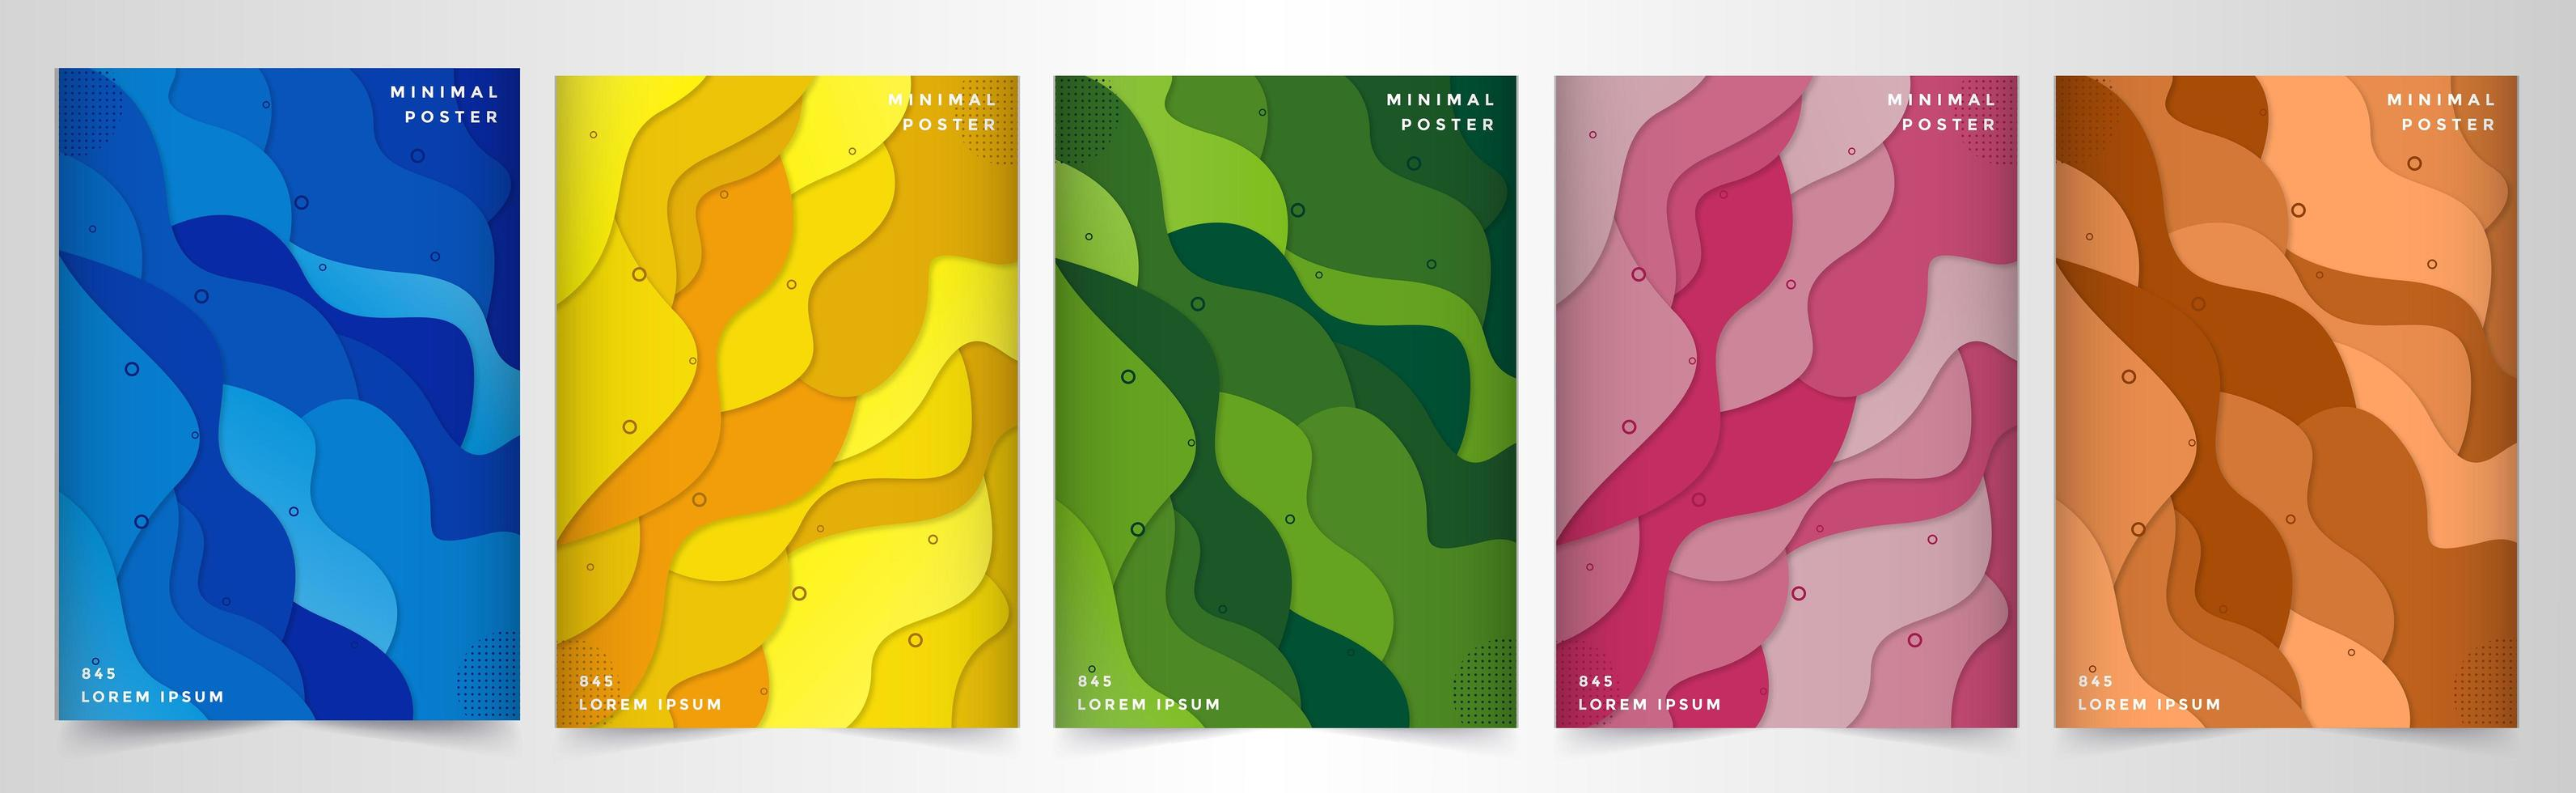 Paper cut style layered wave shape poster set vector